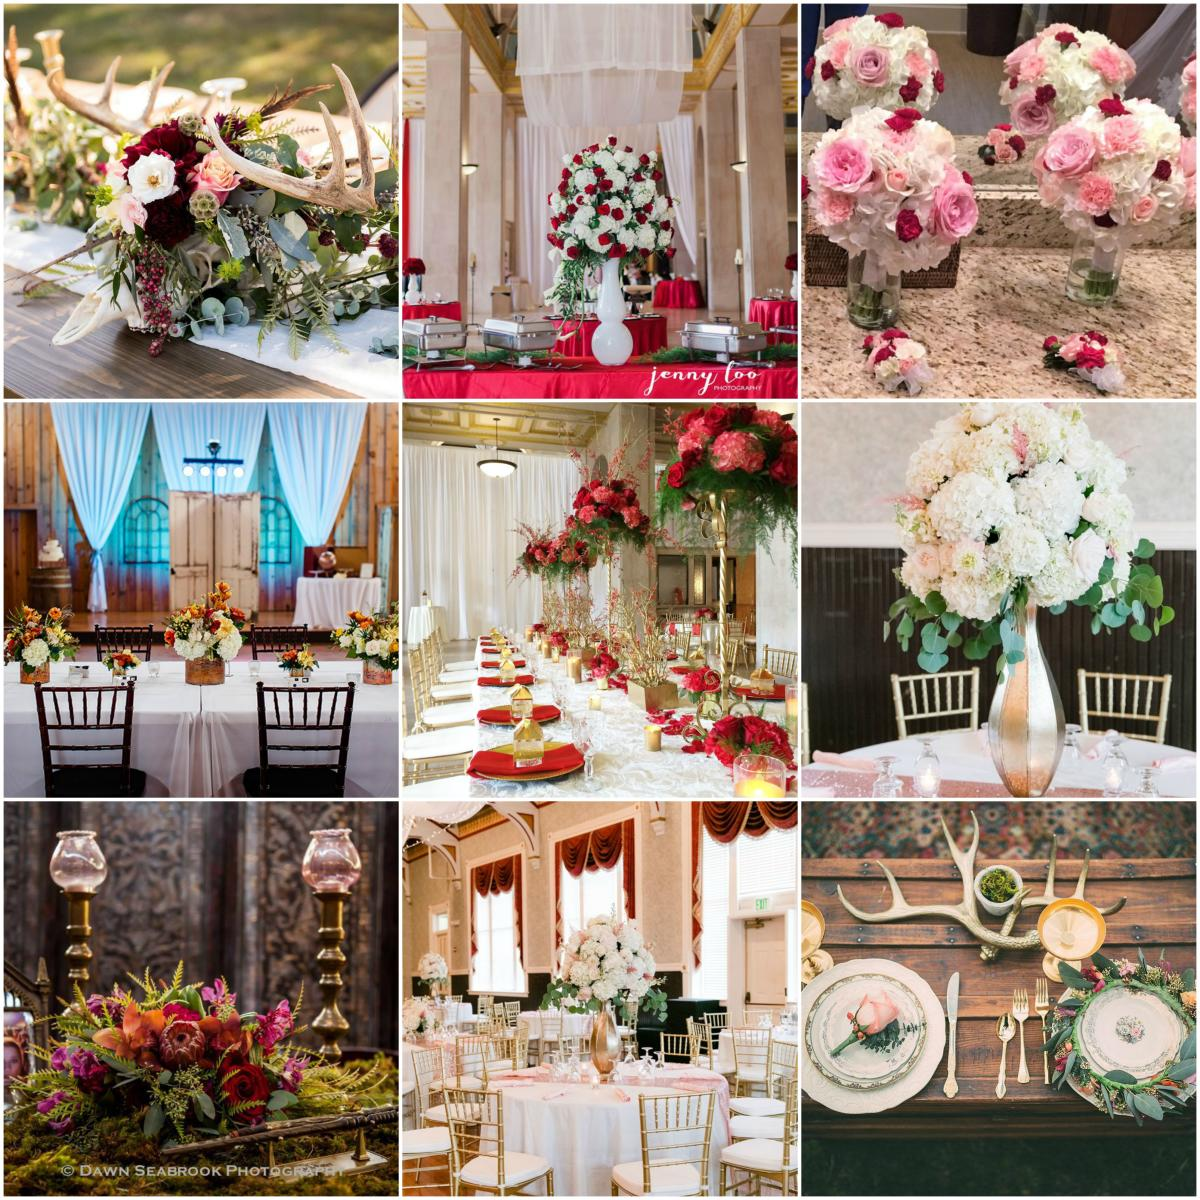 Southern Florals and Drapes collage